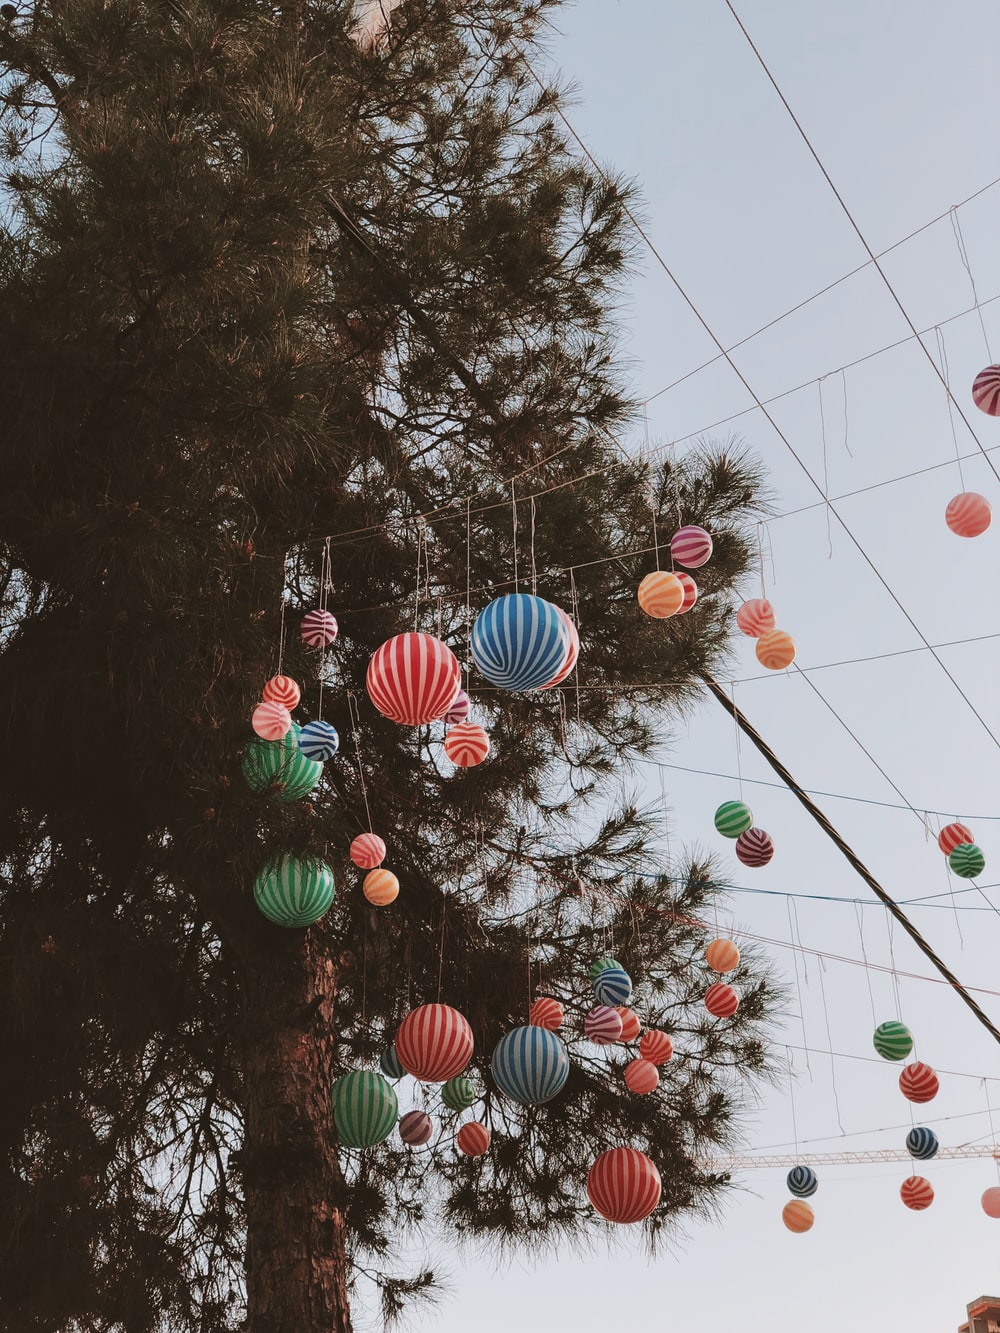 paper lanterns decorations by tree